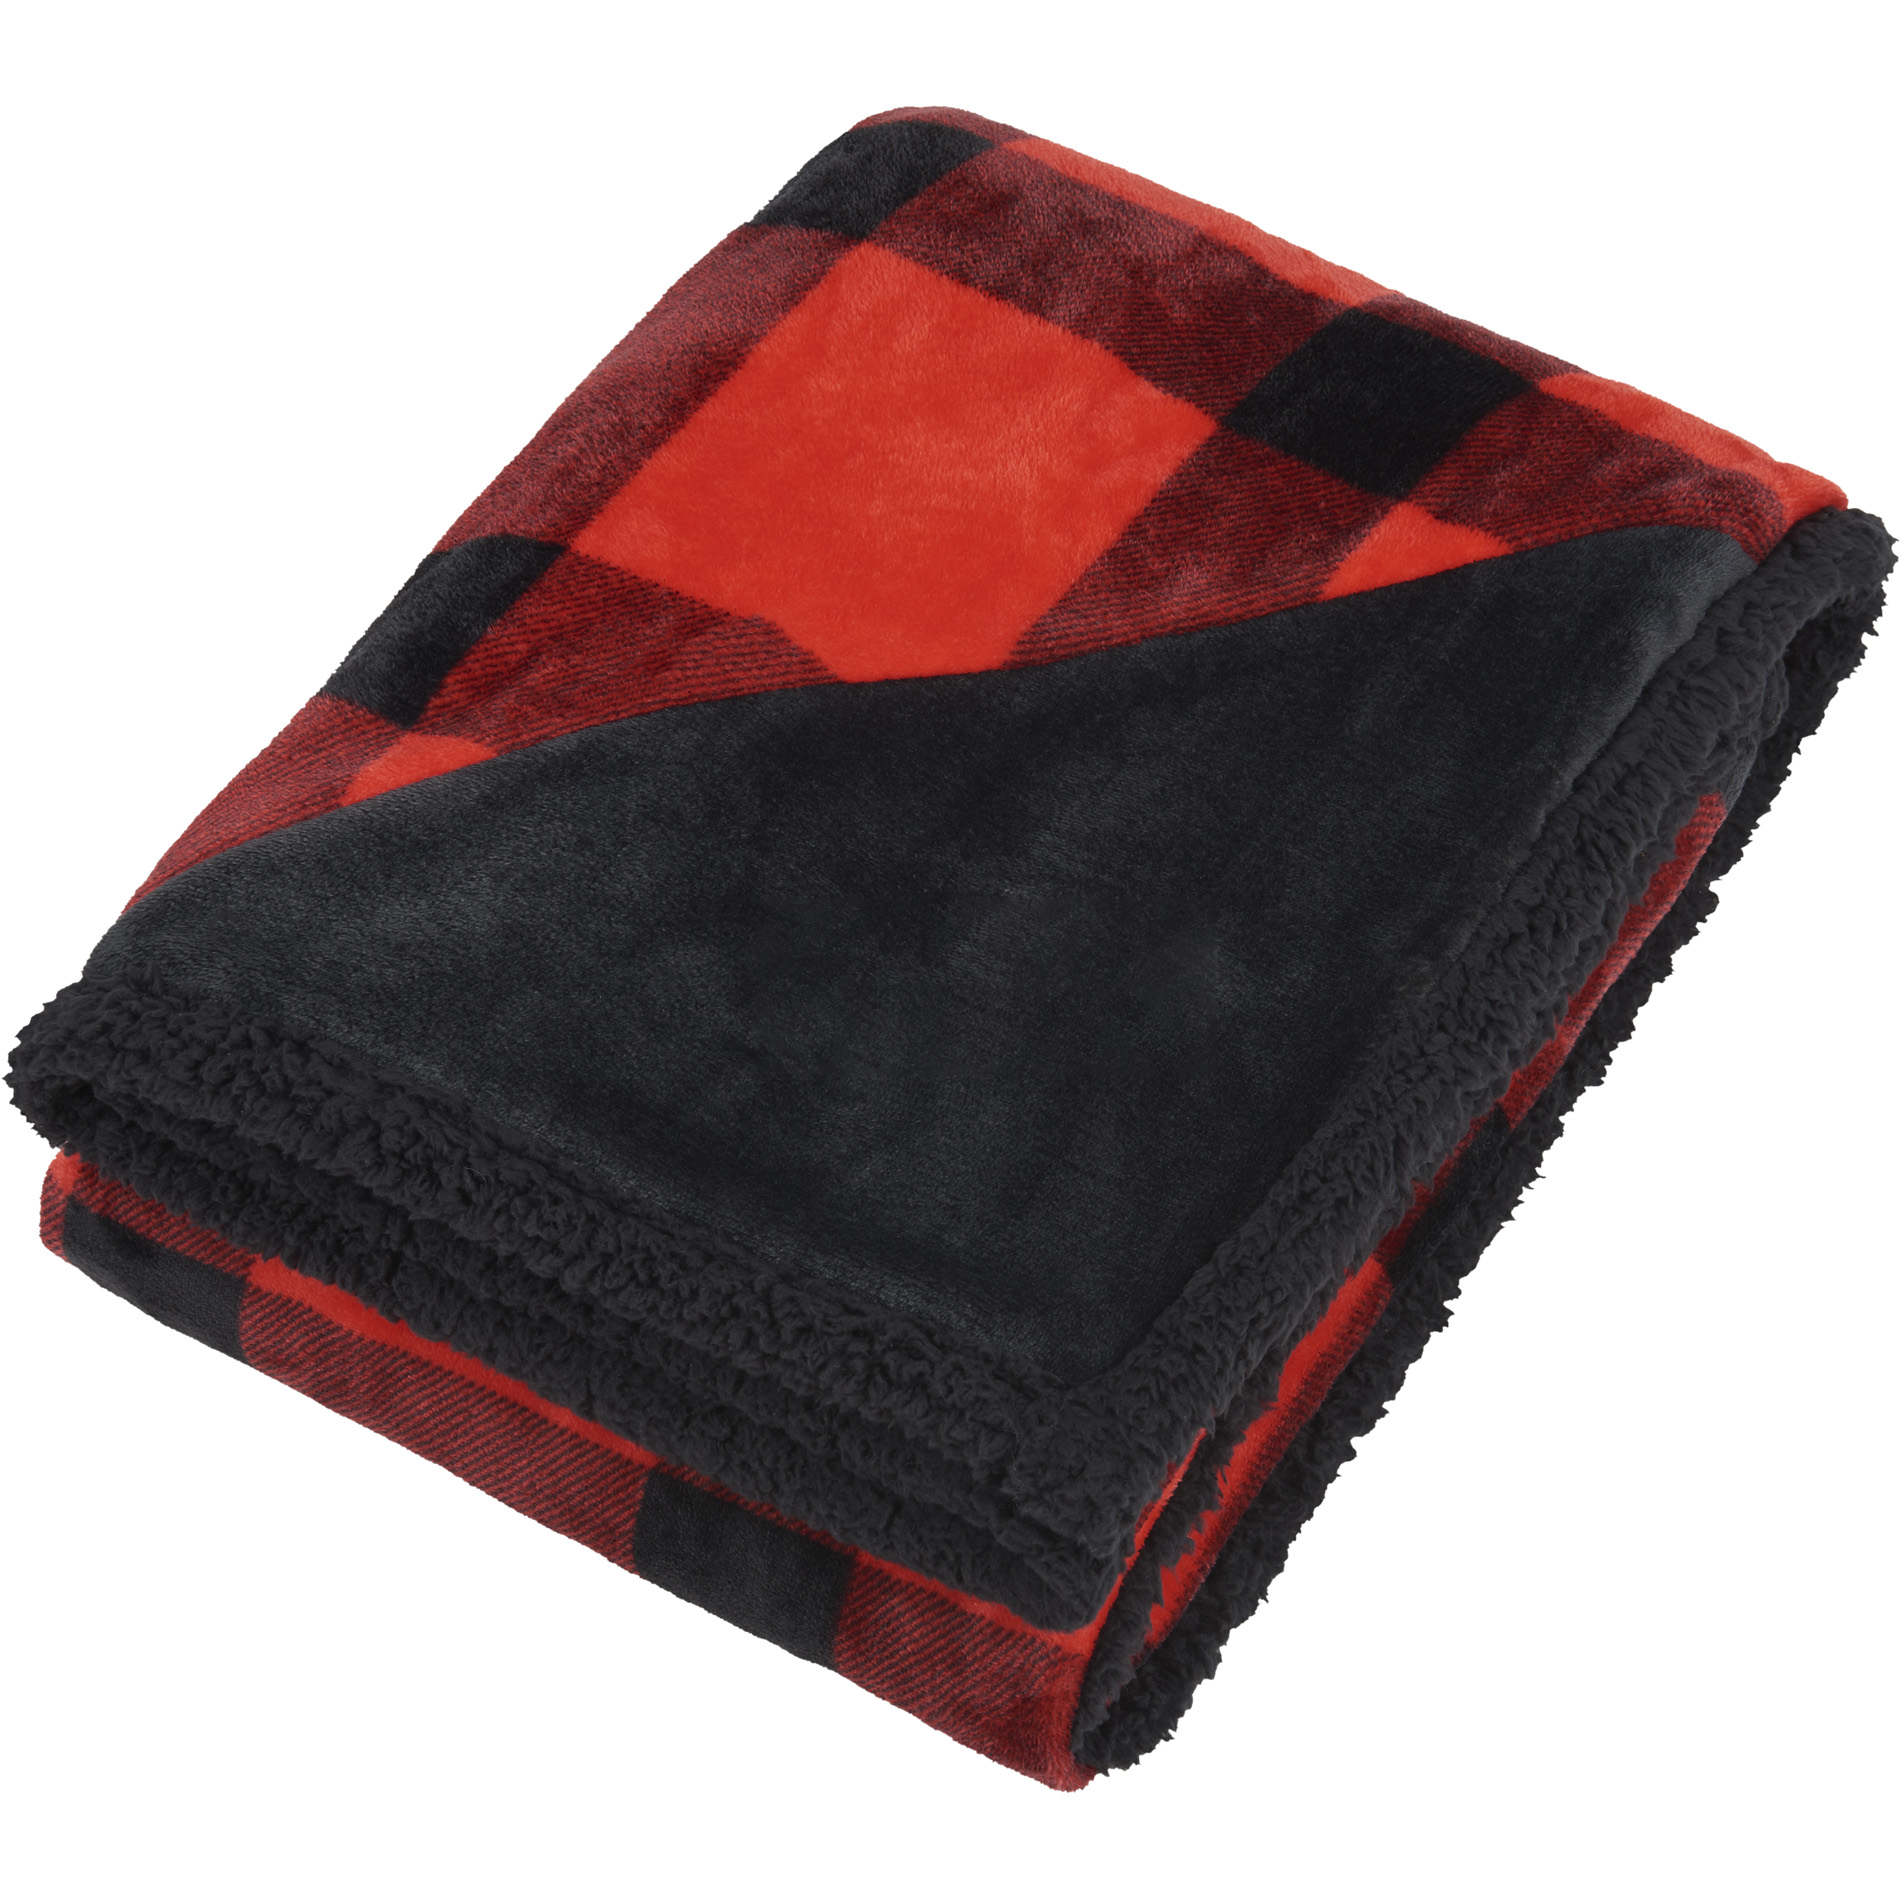 Field & Co. 1081-51 - Buffalo Plaid Sherpa Blanket